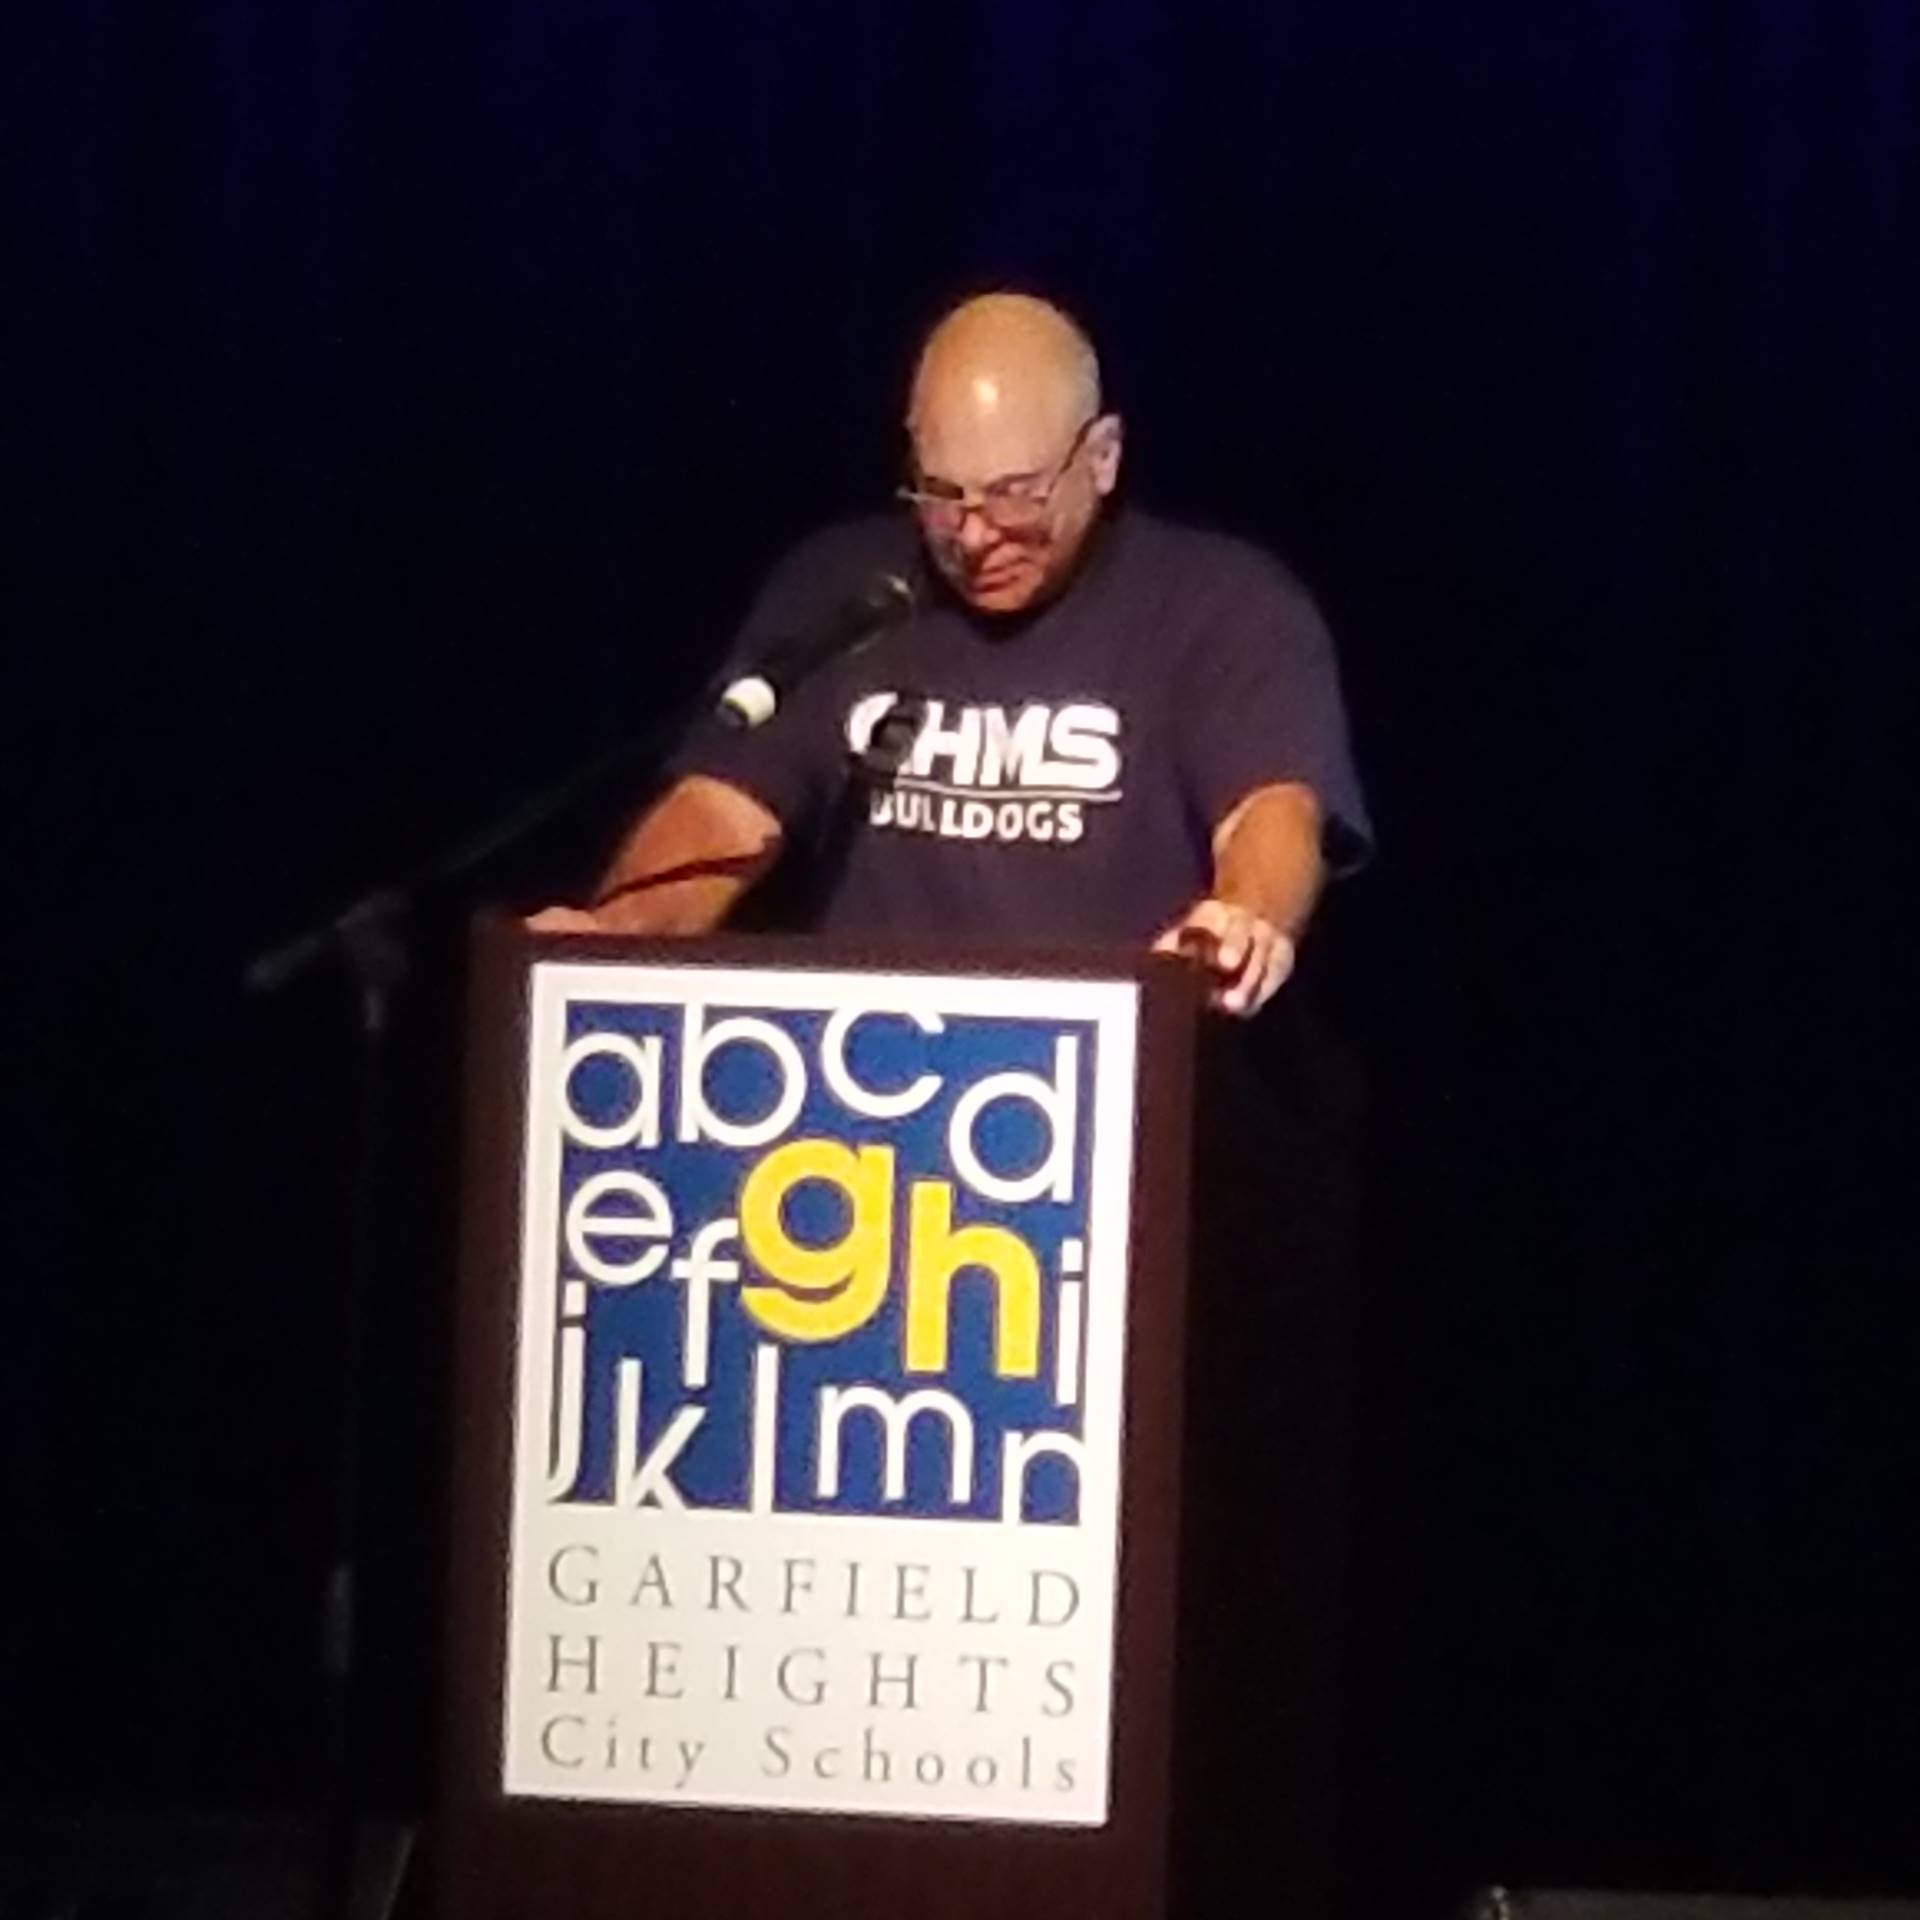 Superintendent Terry Olszewski in a GHMS t-shirt